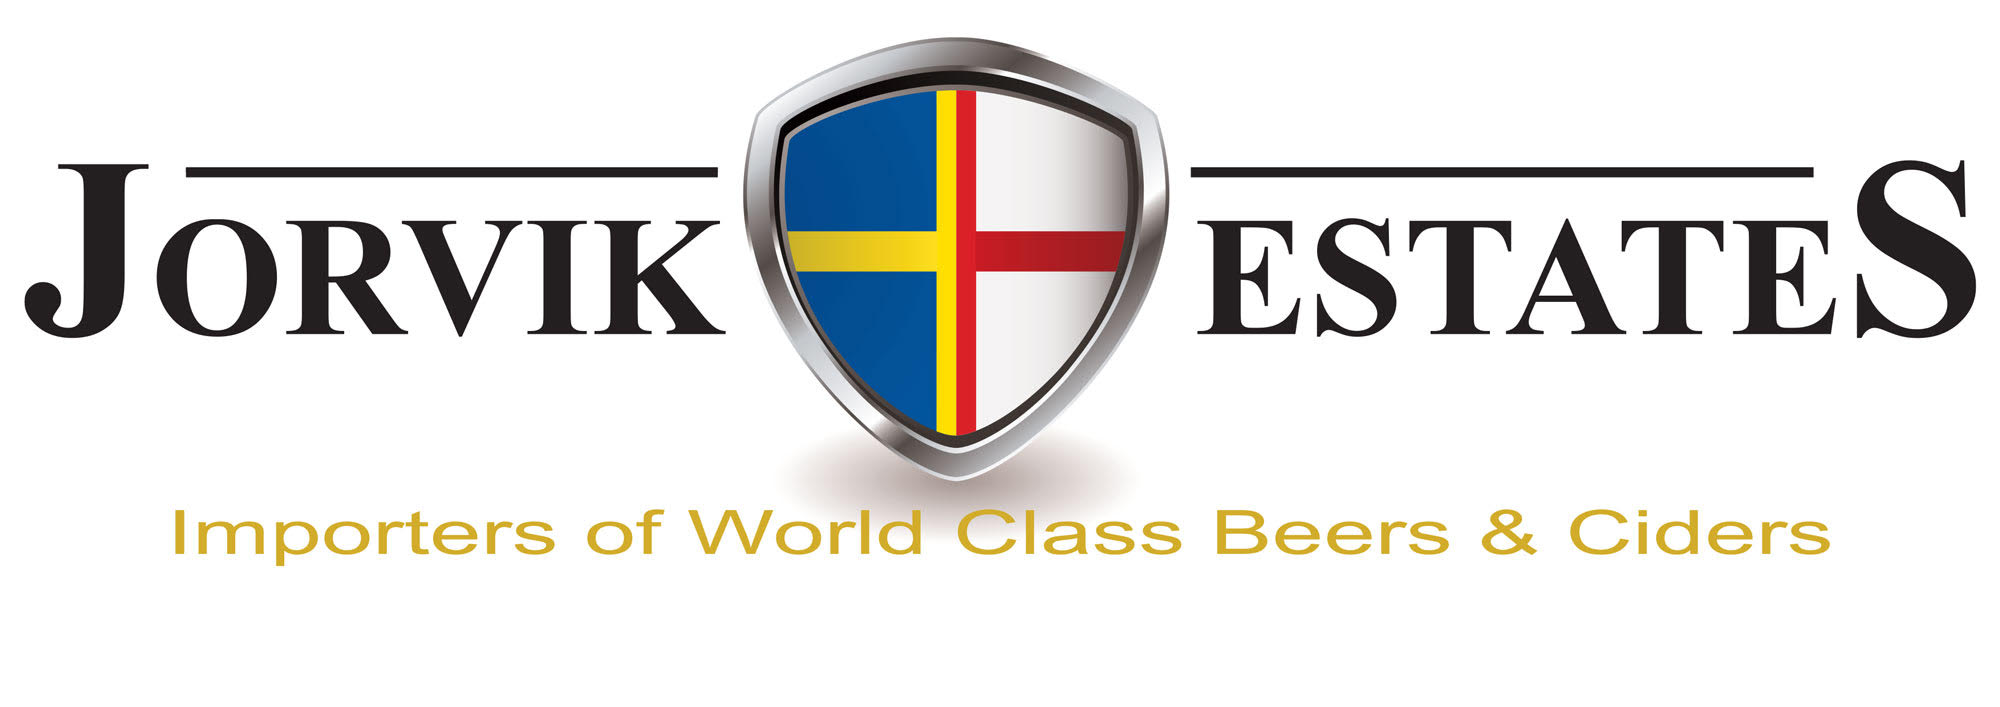 Importers of World Class Beers and Ciders